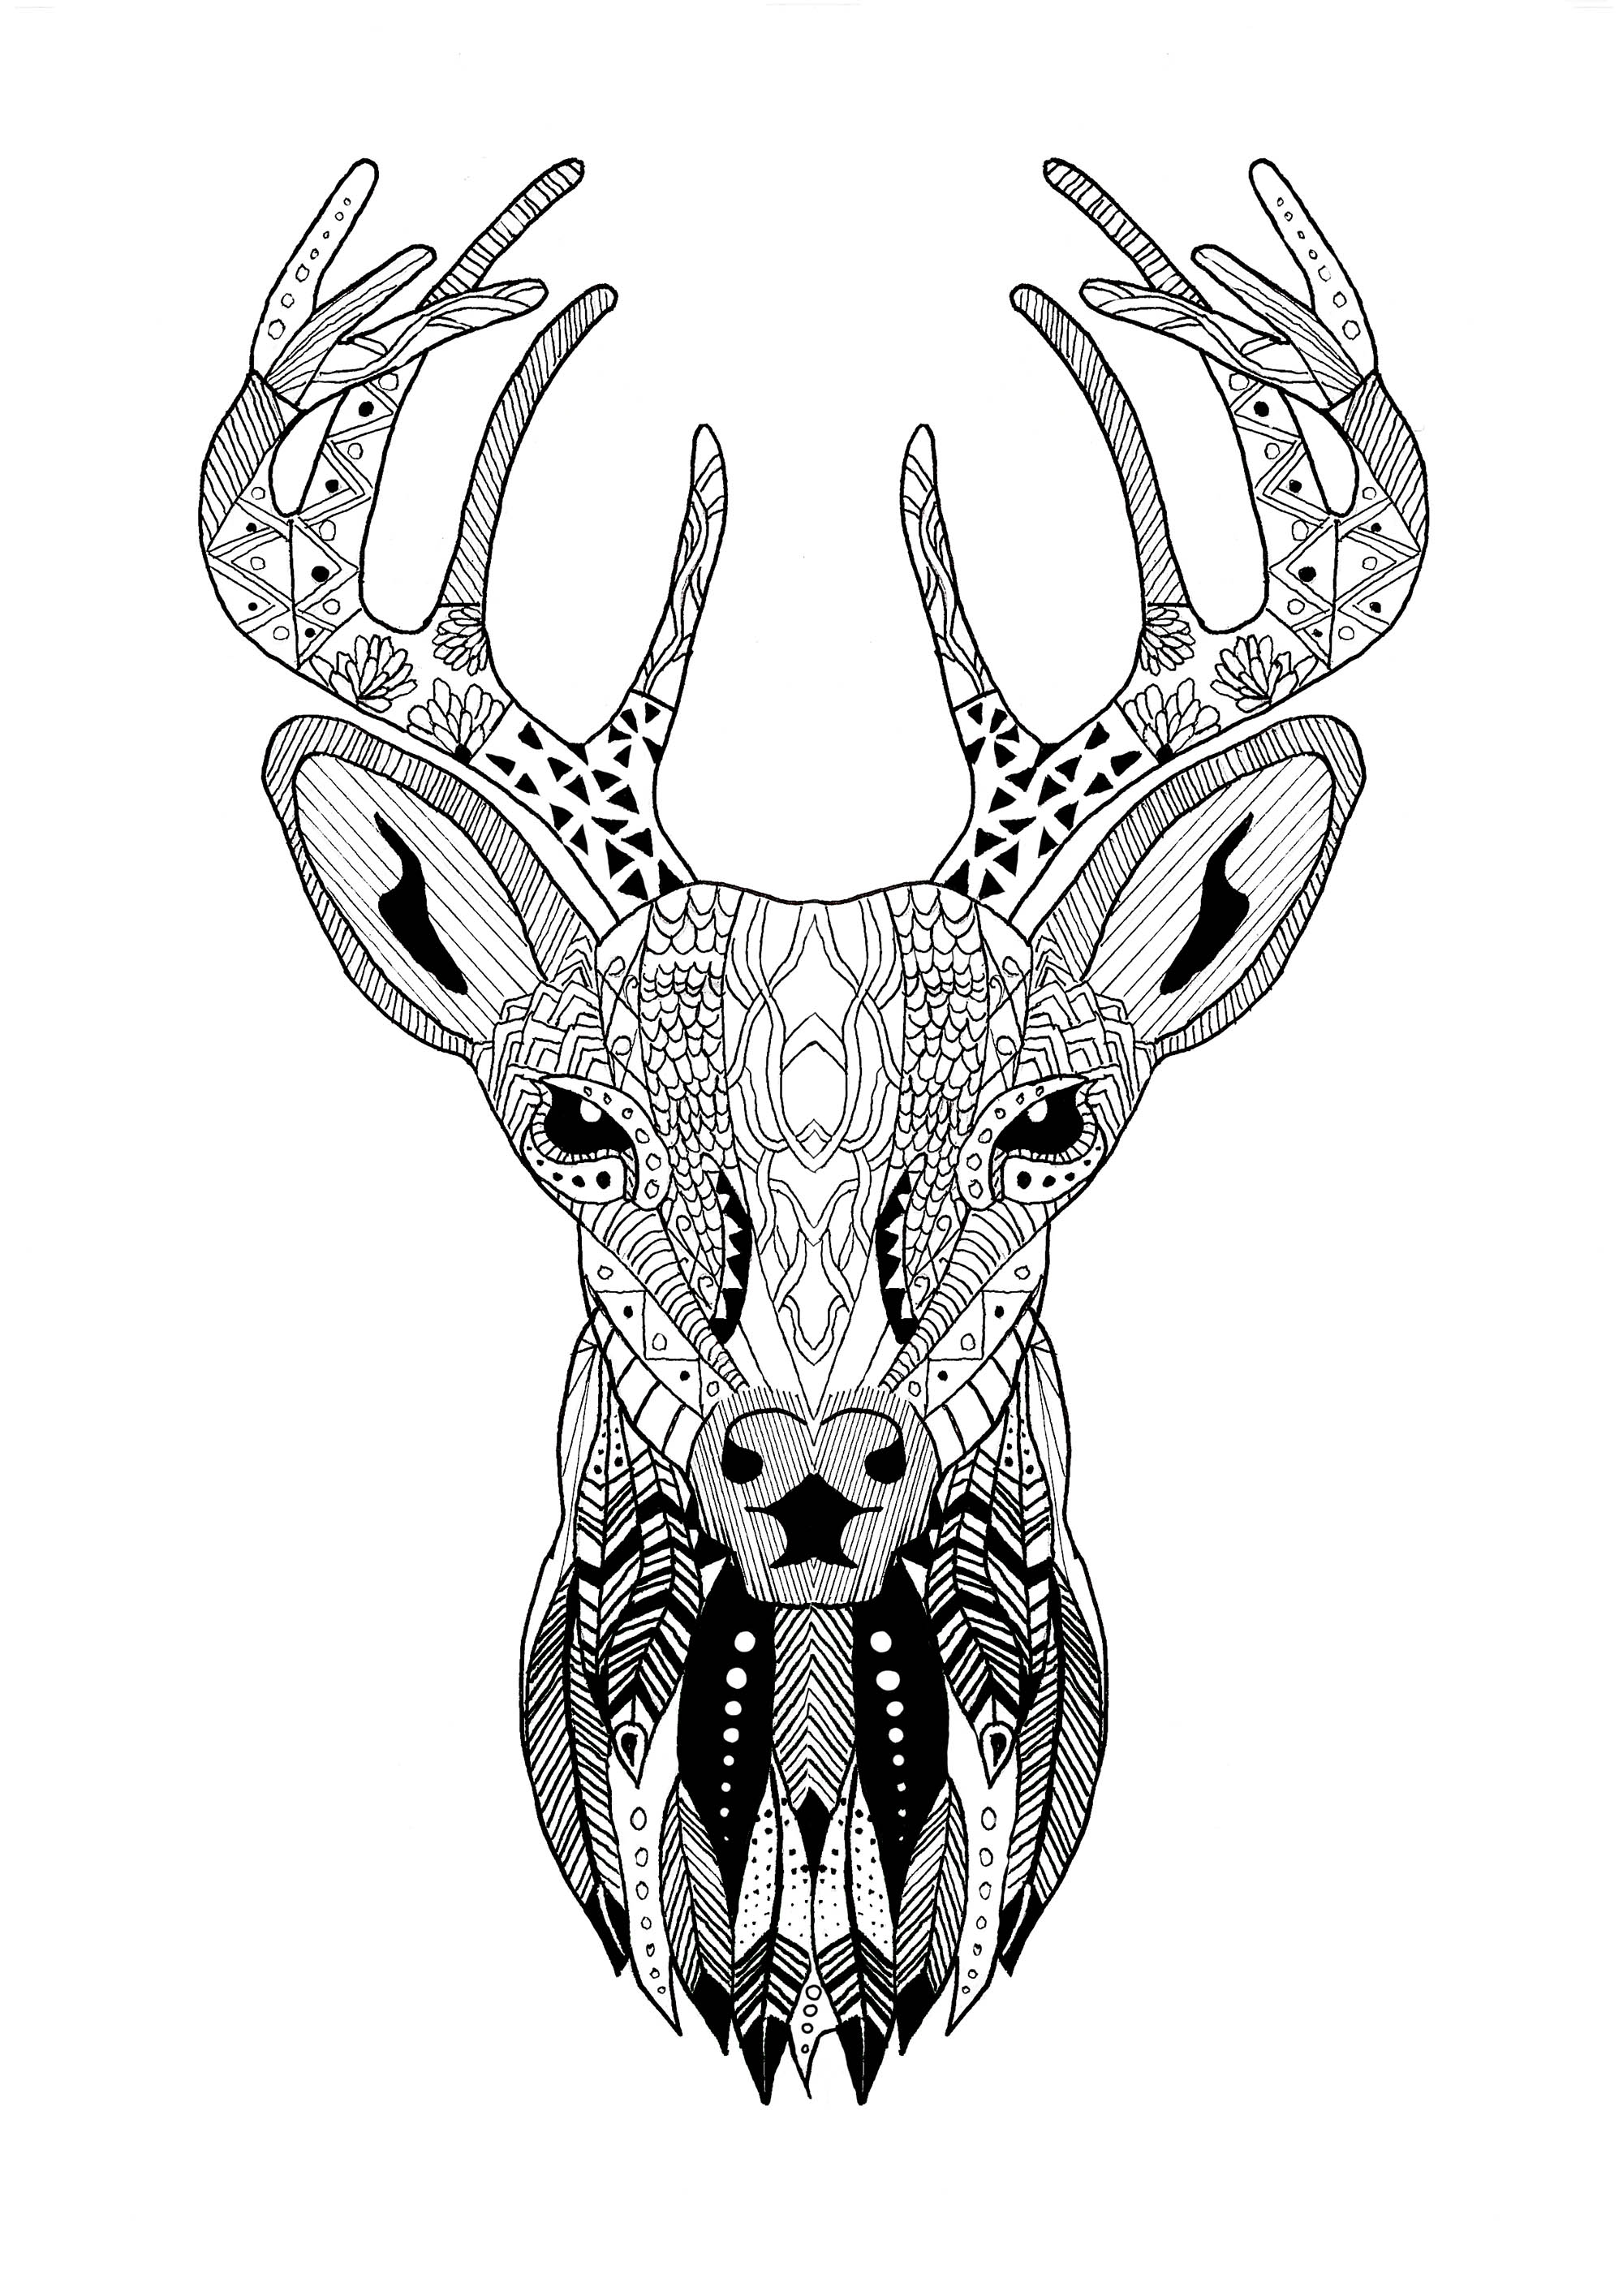 Beautiful Christmas reindeer coloring with zentangle pattern